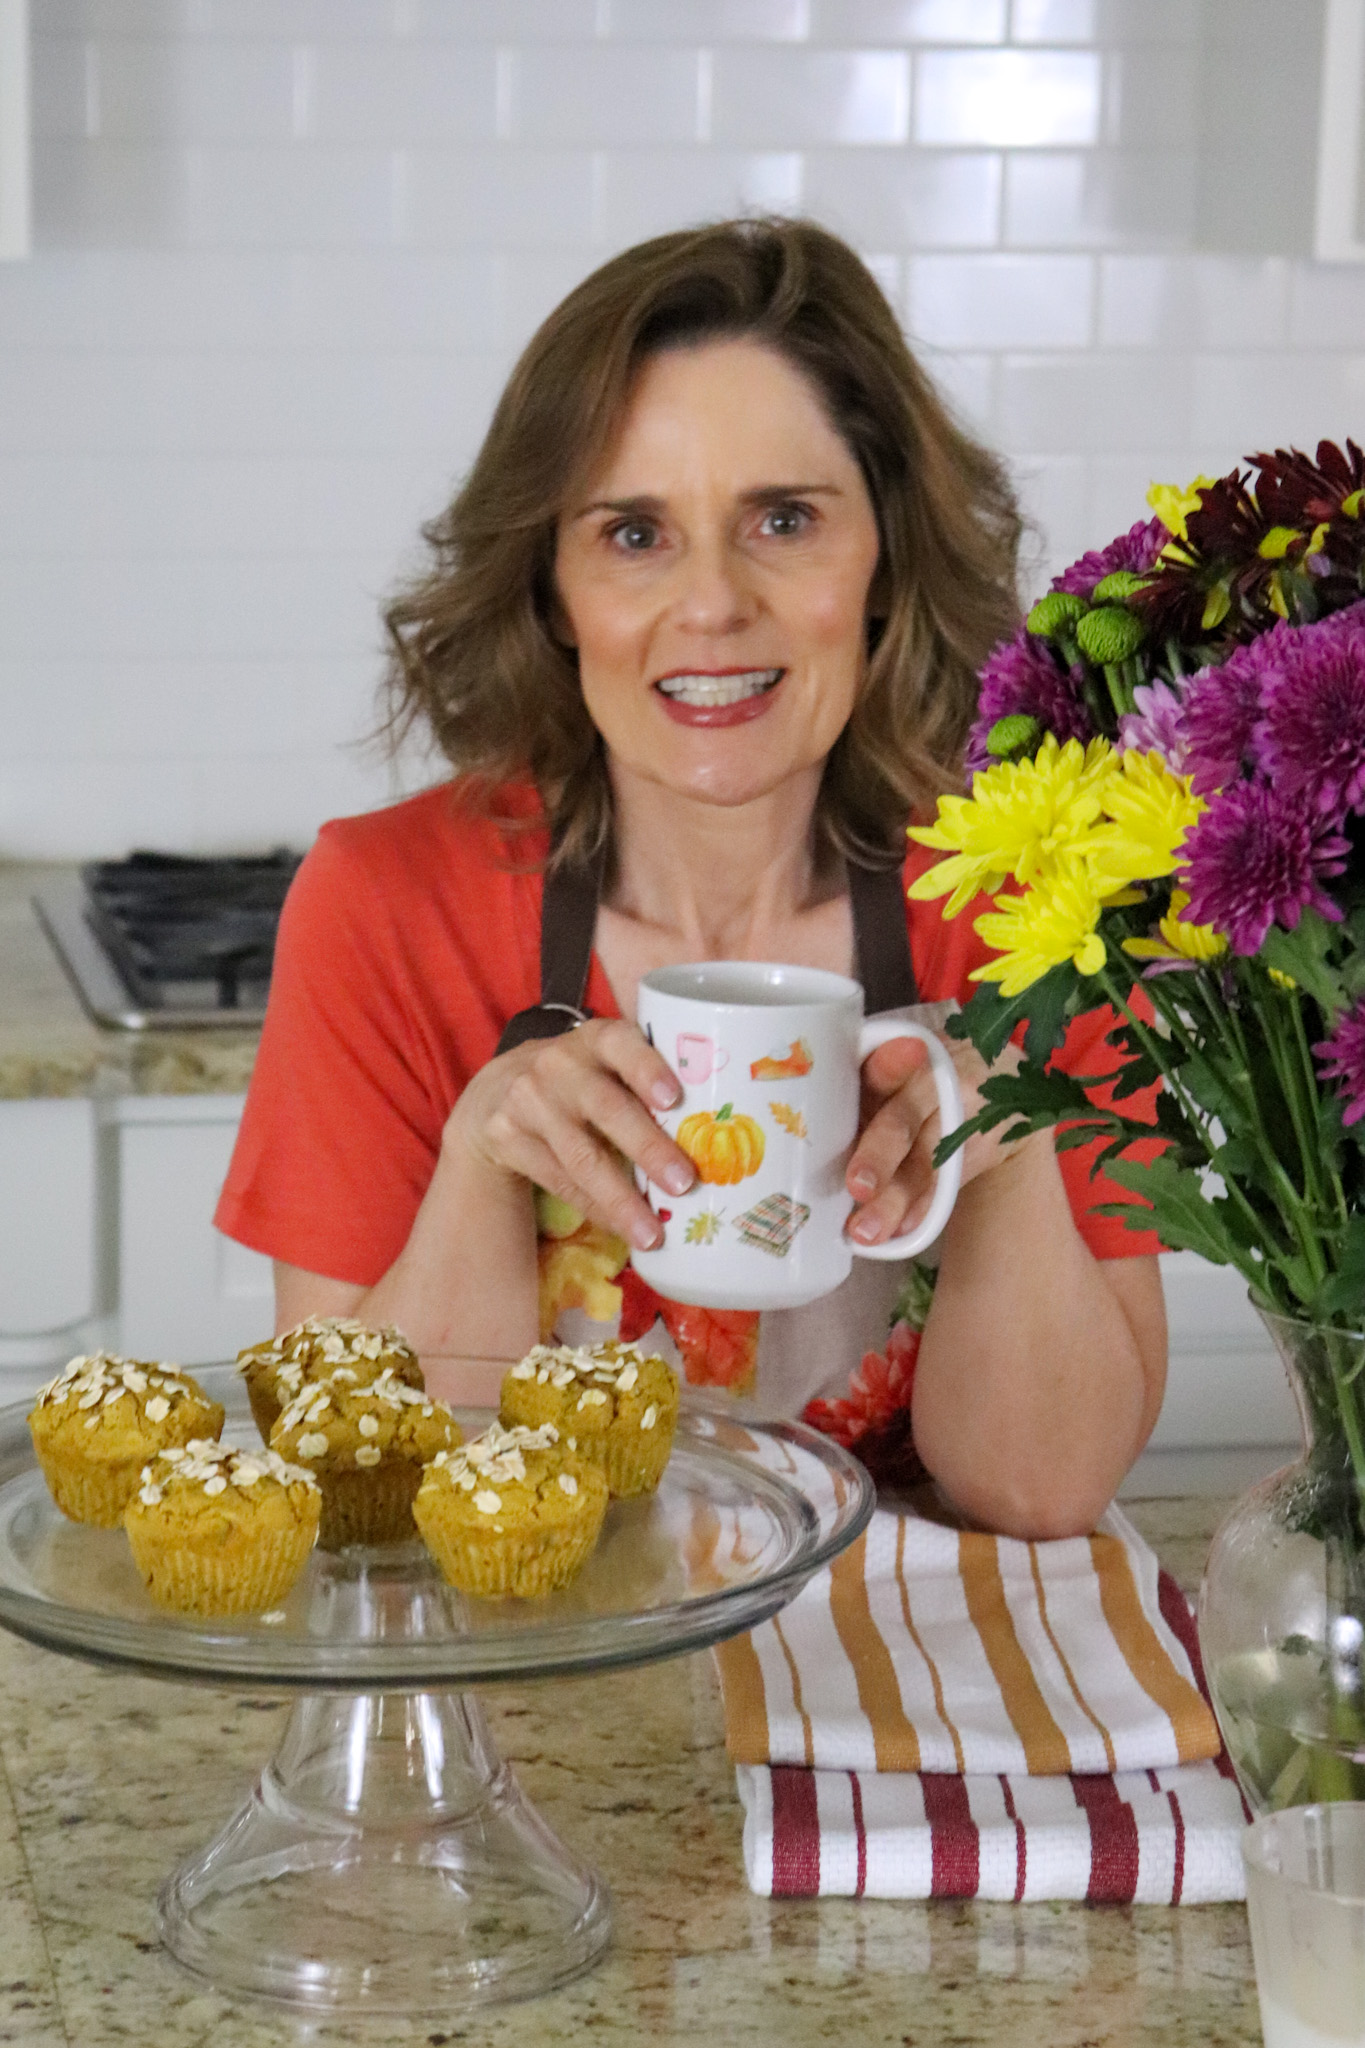 woman over 50 standing in front of a kitchen countertop holding a fall themed coffee mug and enjoying scents of the season, pumpkin apple muffins and fresh mums